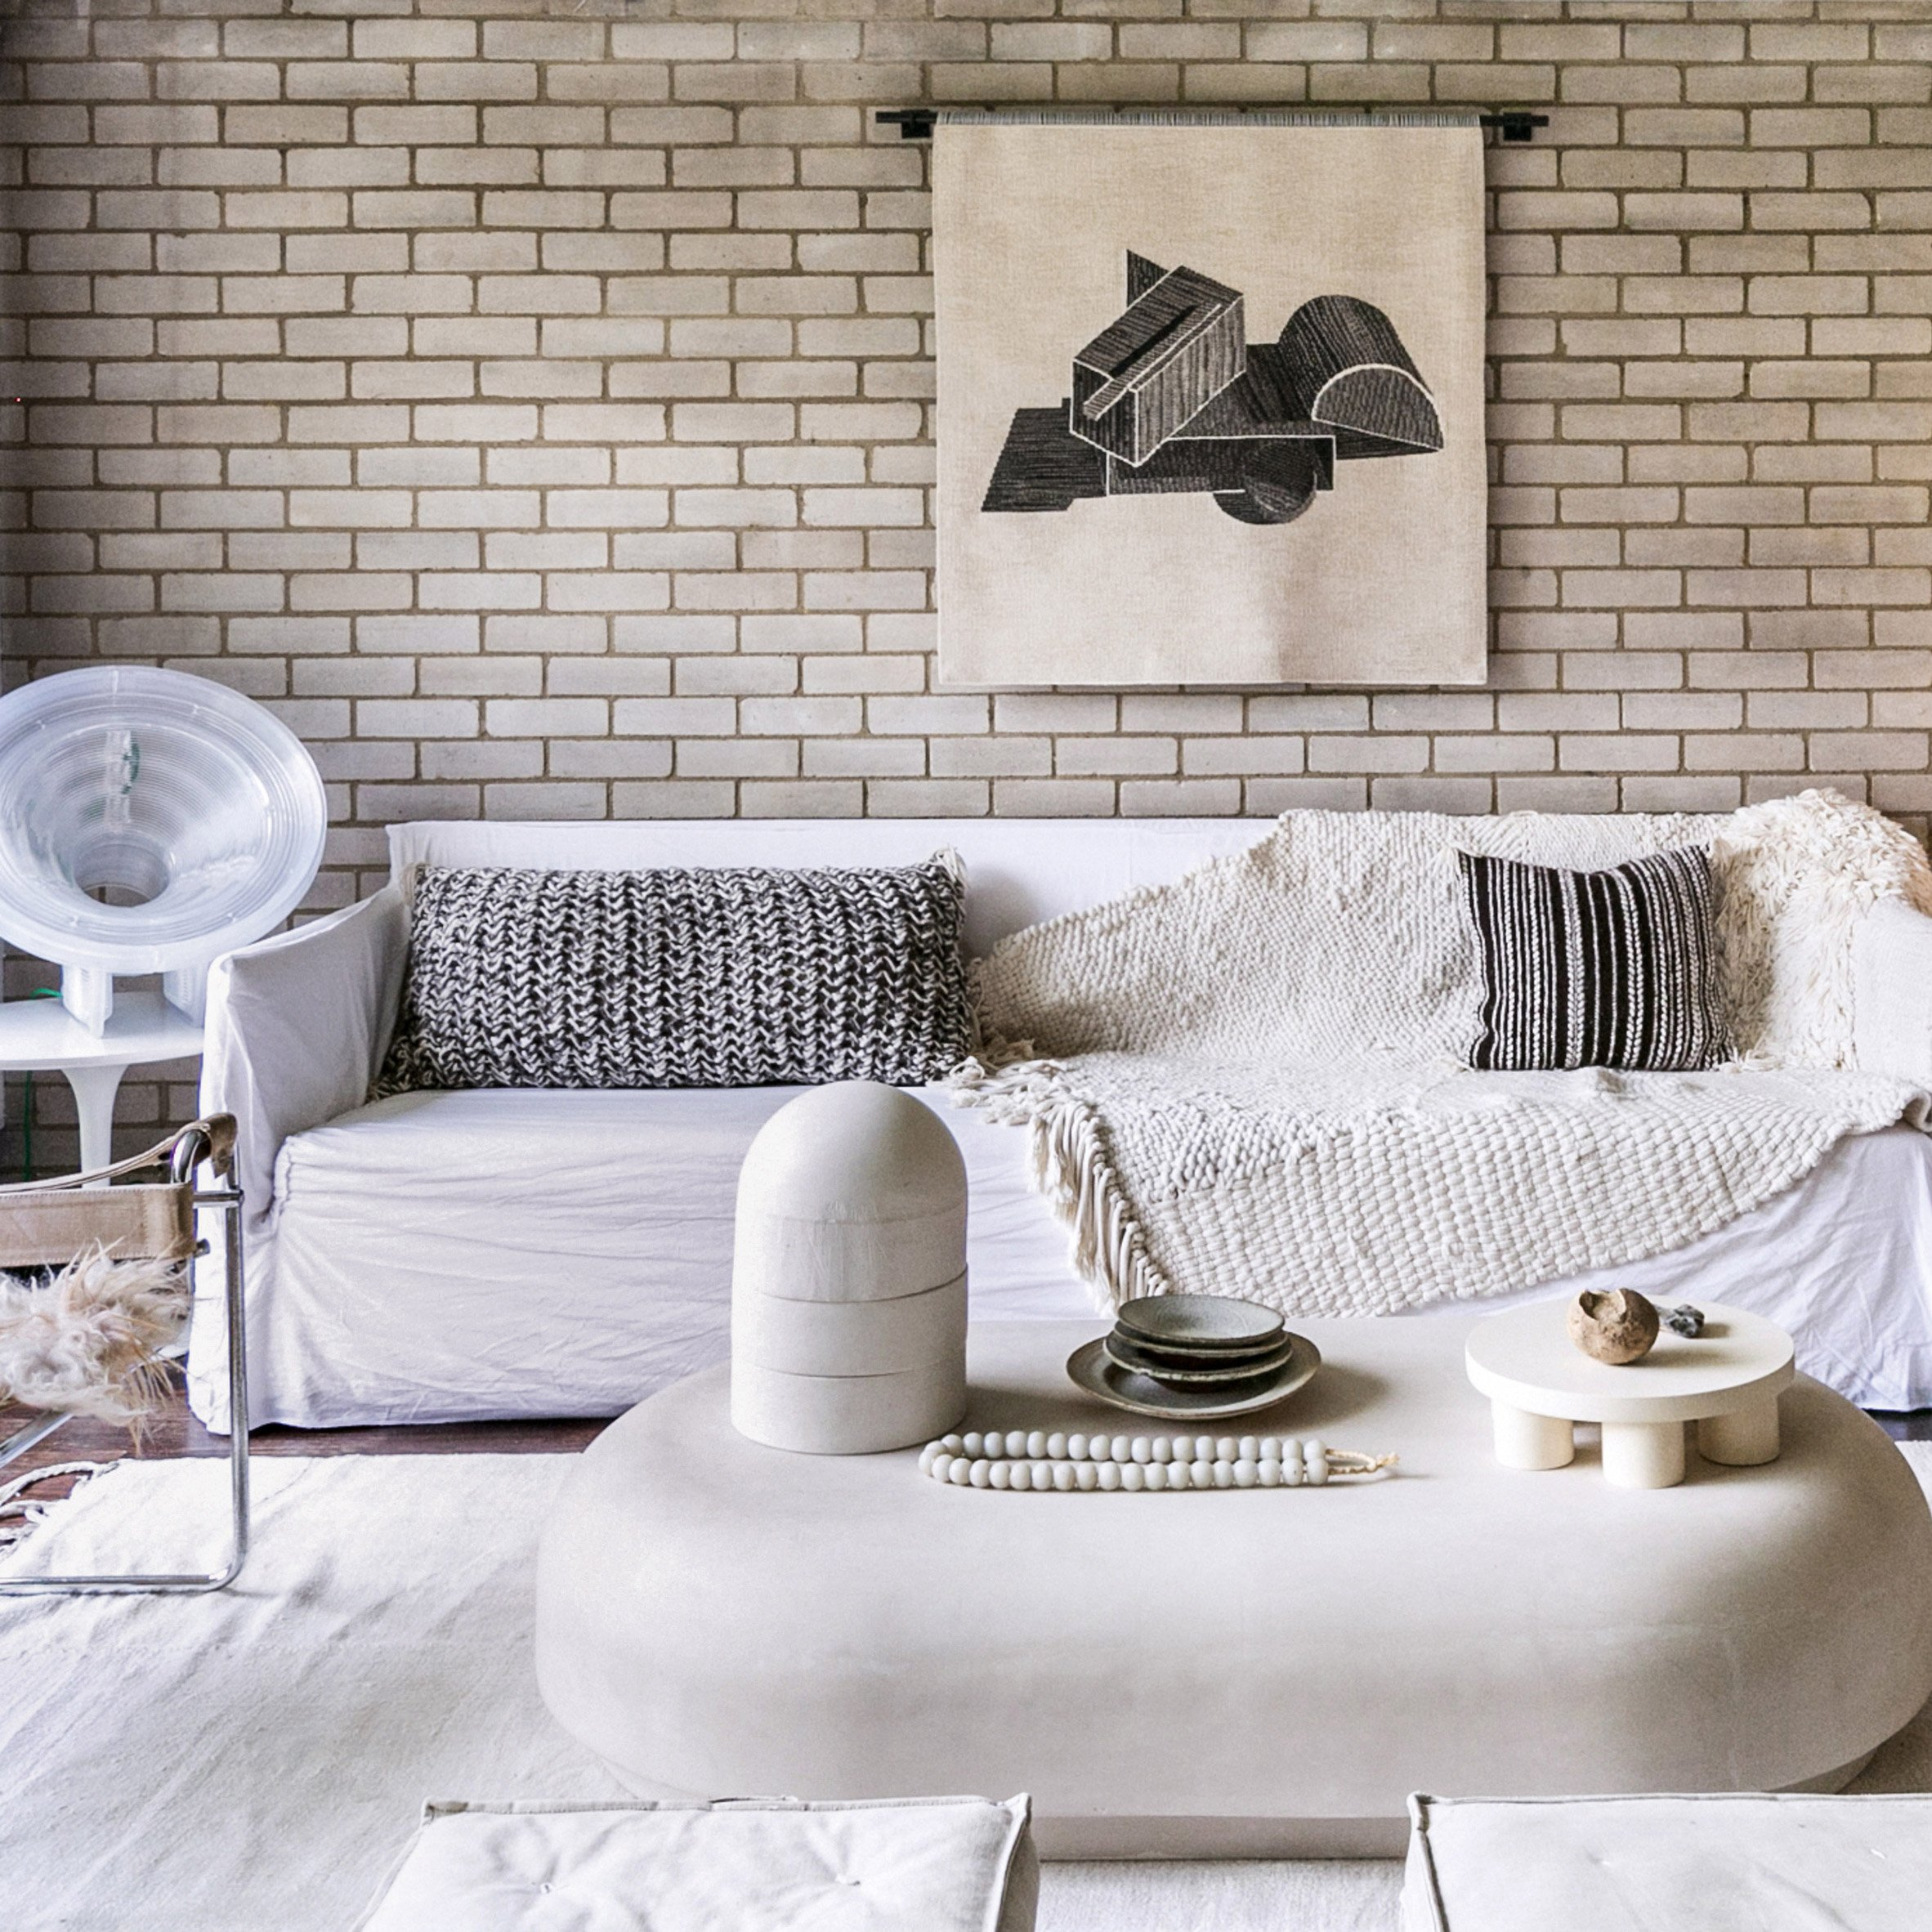 A tactile brick-walled living room